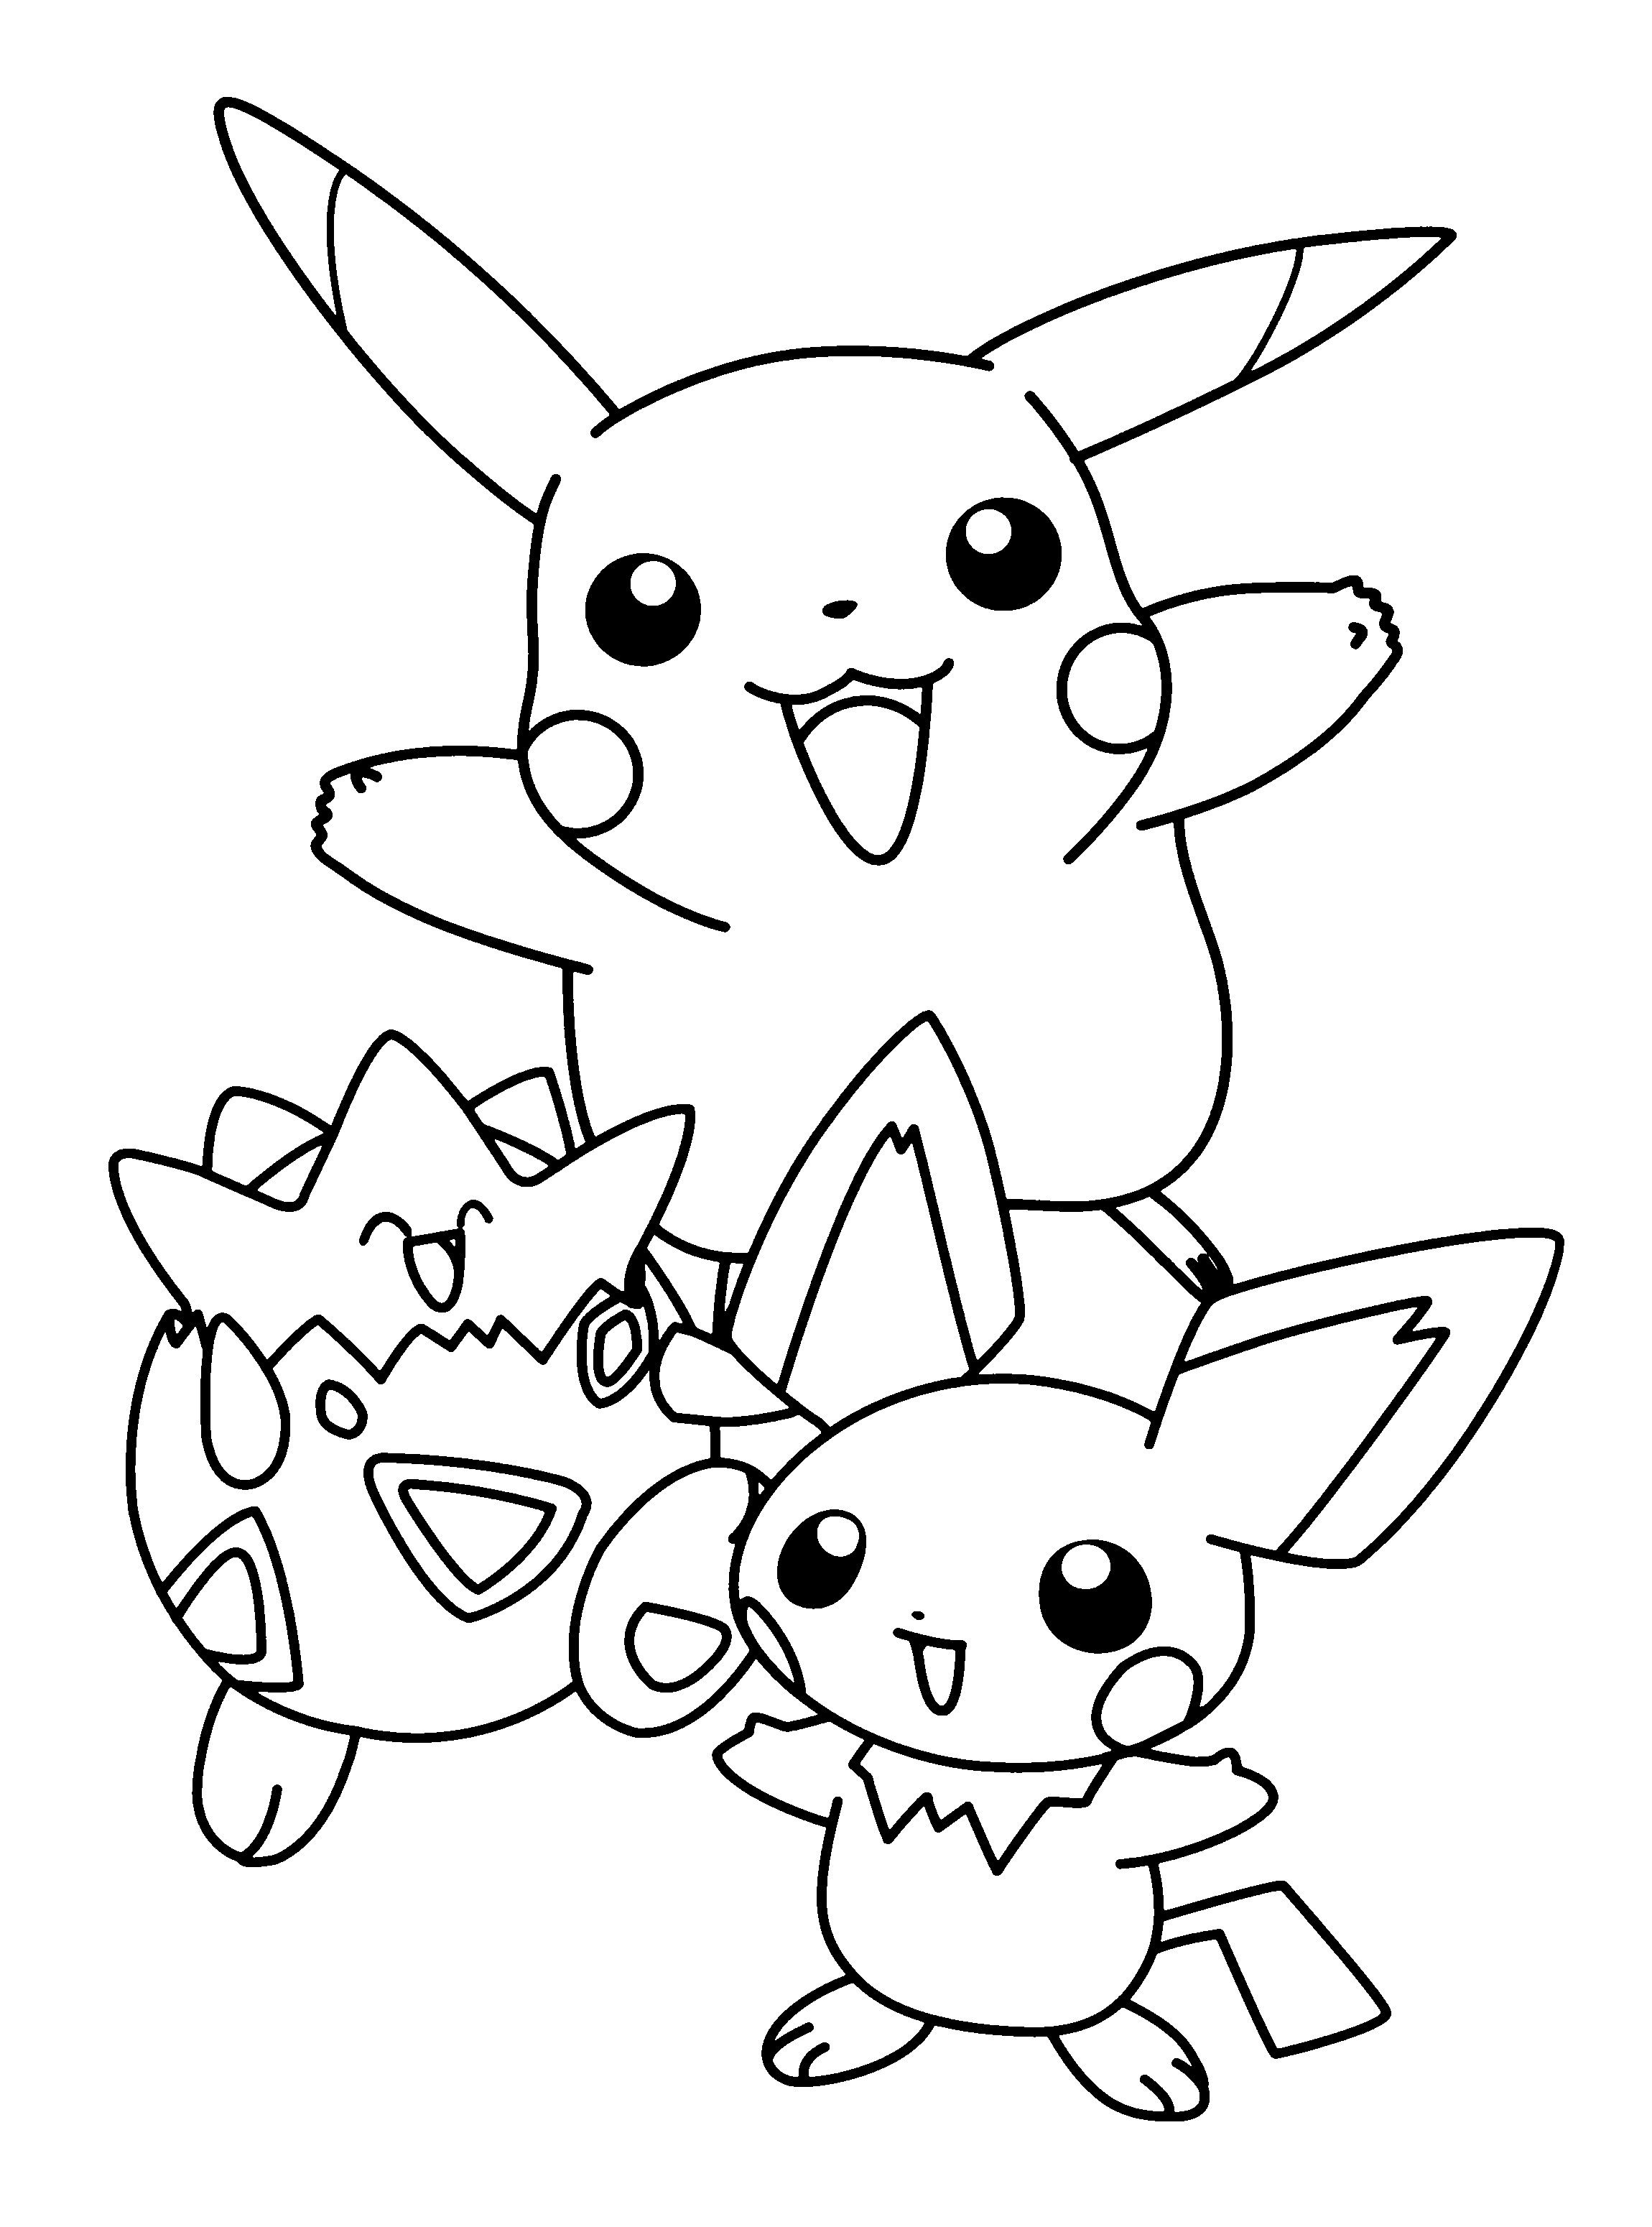 Lego Pikachu Coloring Pages Through The Thousand Pictures On The Web About Lego Pikachu Colo Pikachu Coloring Page Cool Coloring Pages Cartoon Coloring Pages